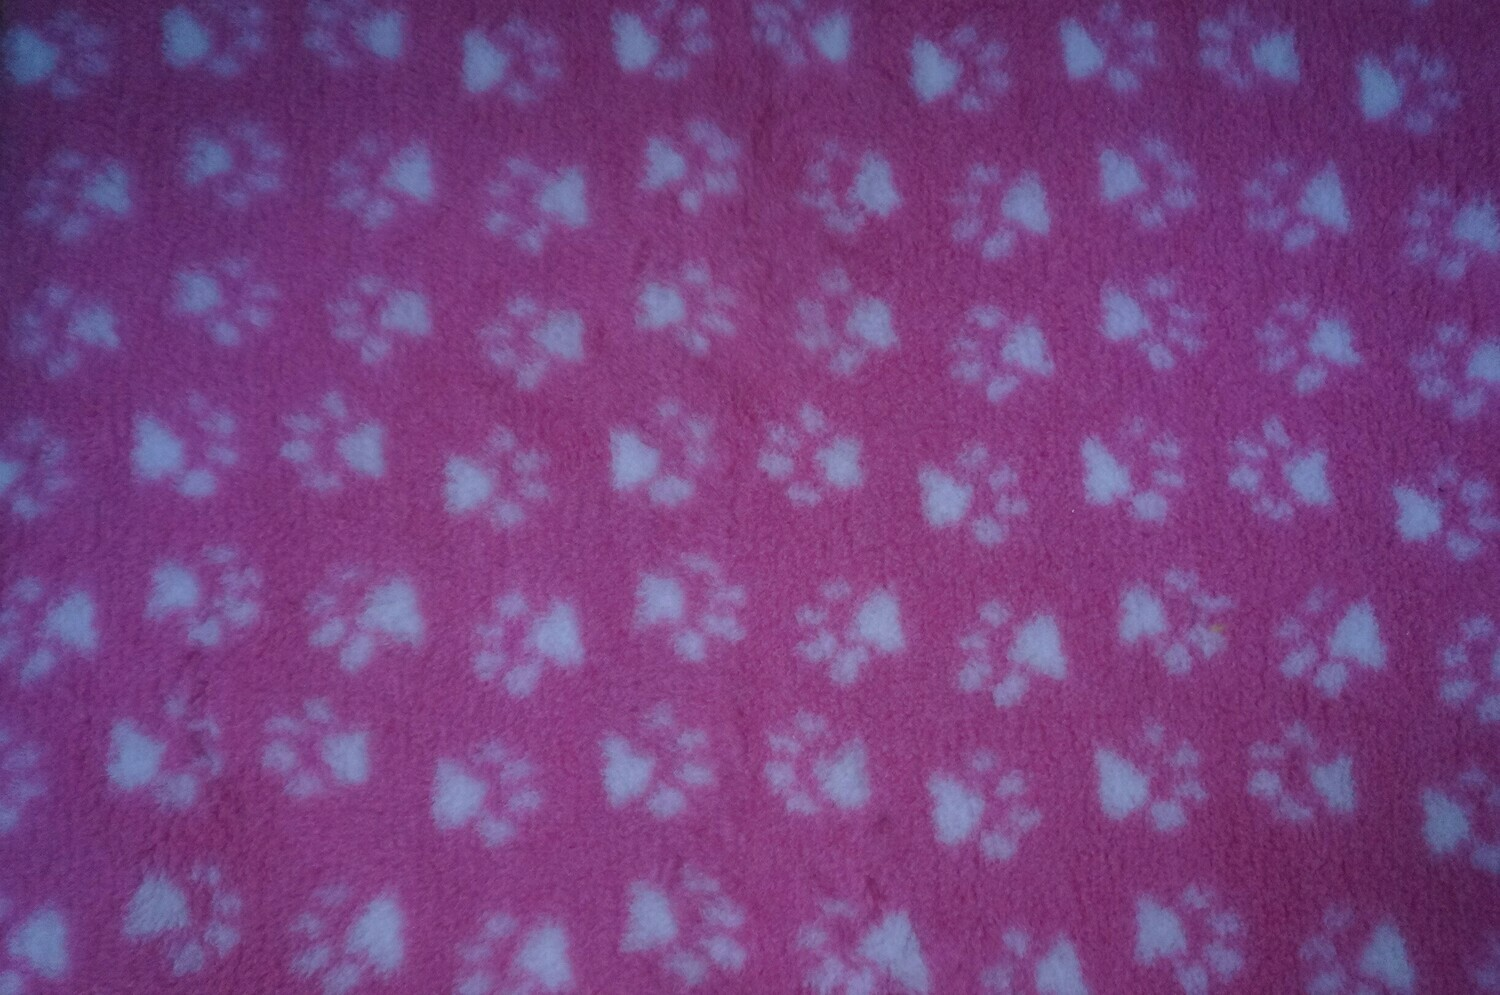 {15 x Metre Roll} : Ultra Premium - Non Slip Backing :  Pink with White Paws - Ref : (6282)